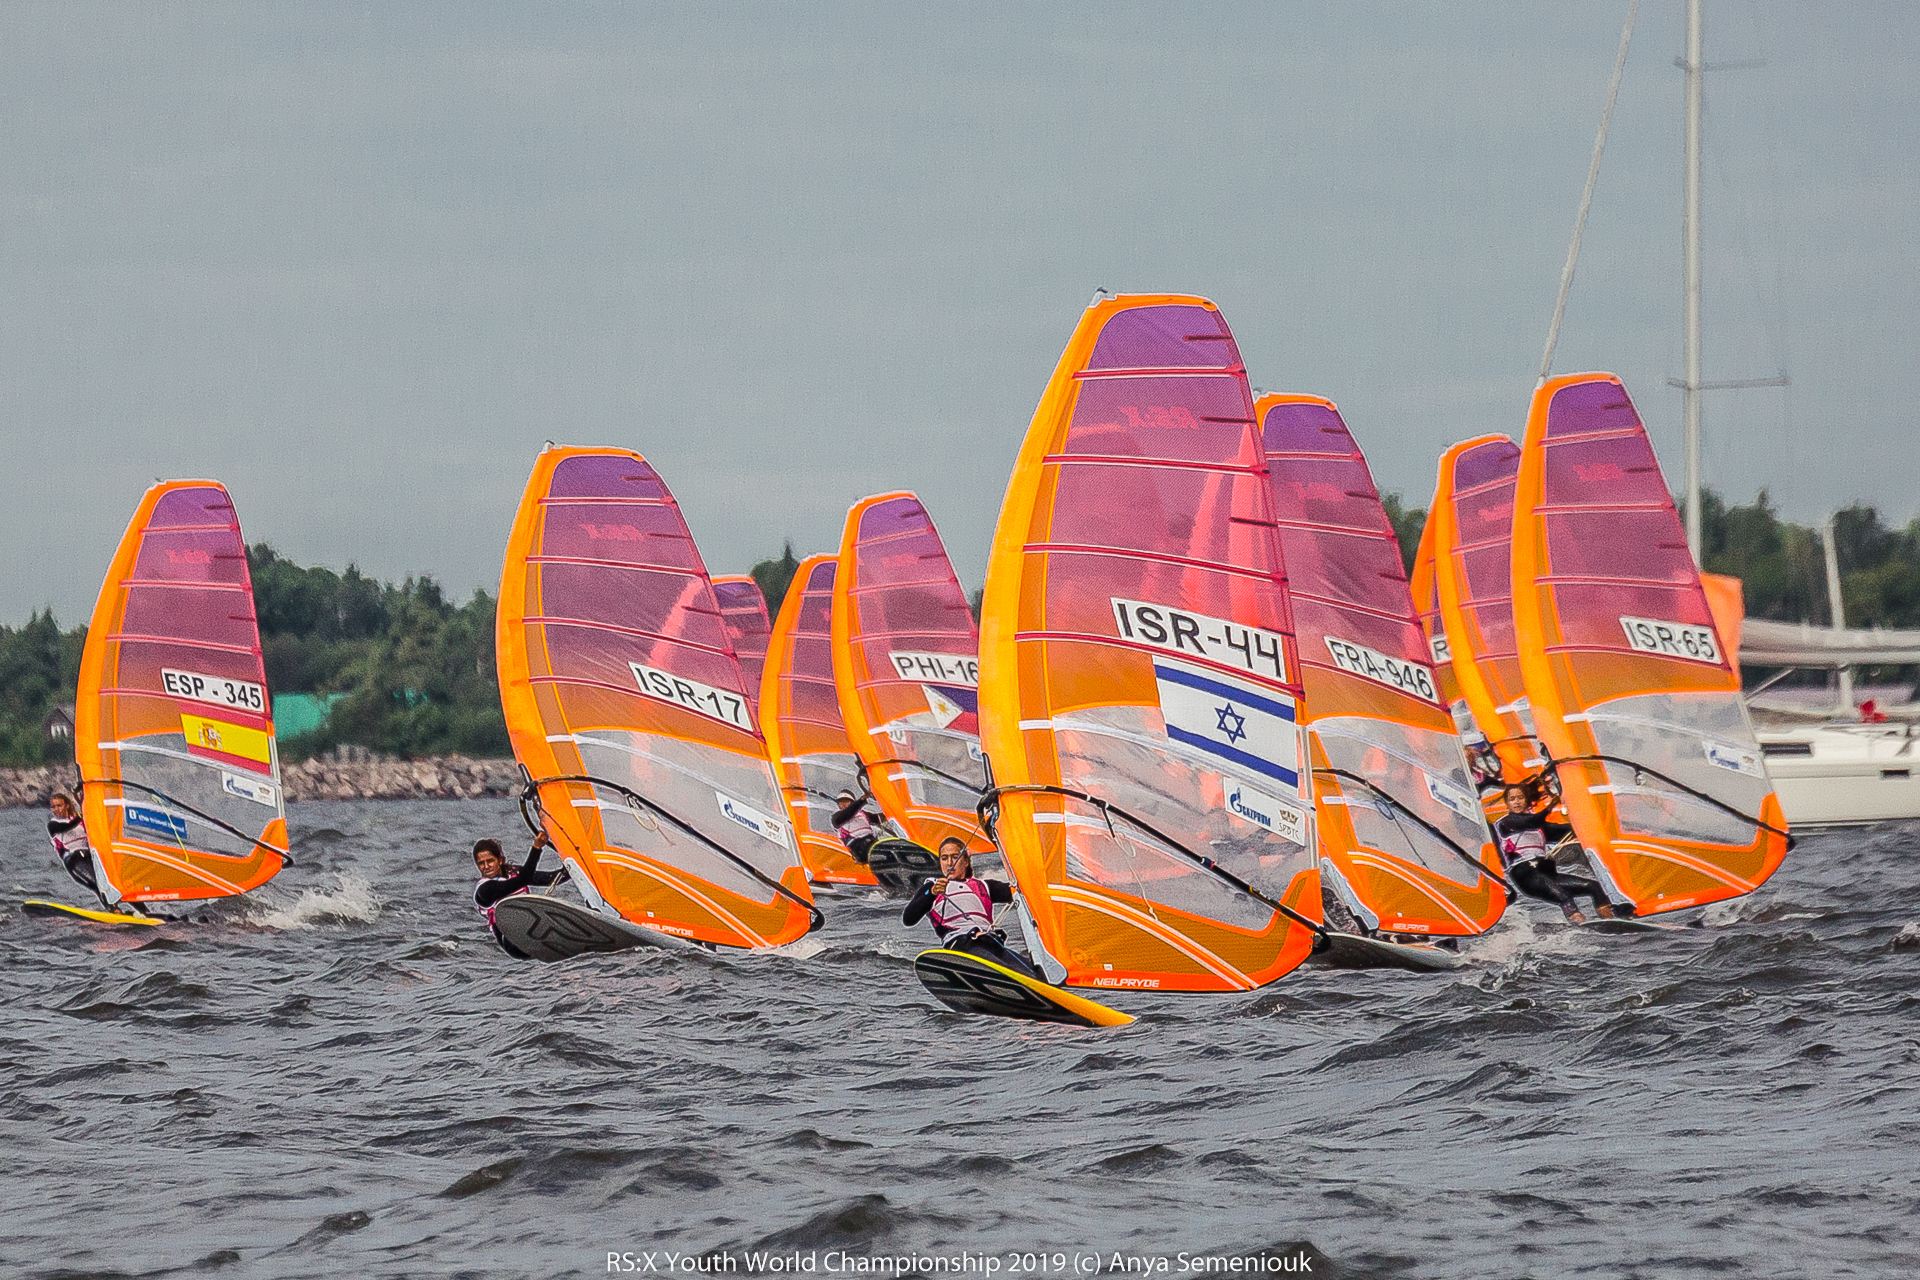 The Windsurfing RS:X Youth World Championship has started in Saint